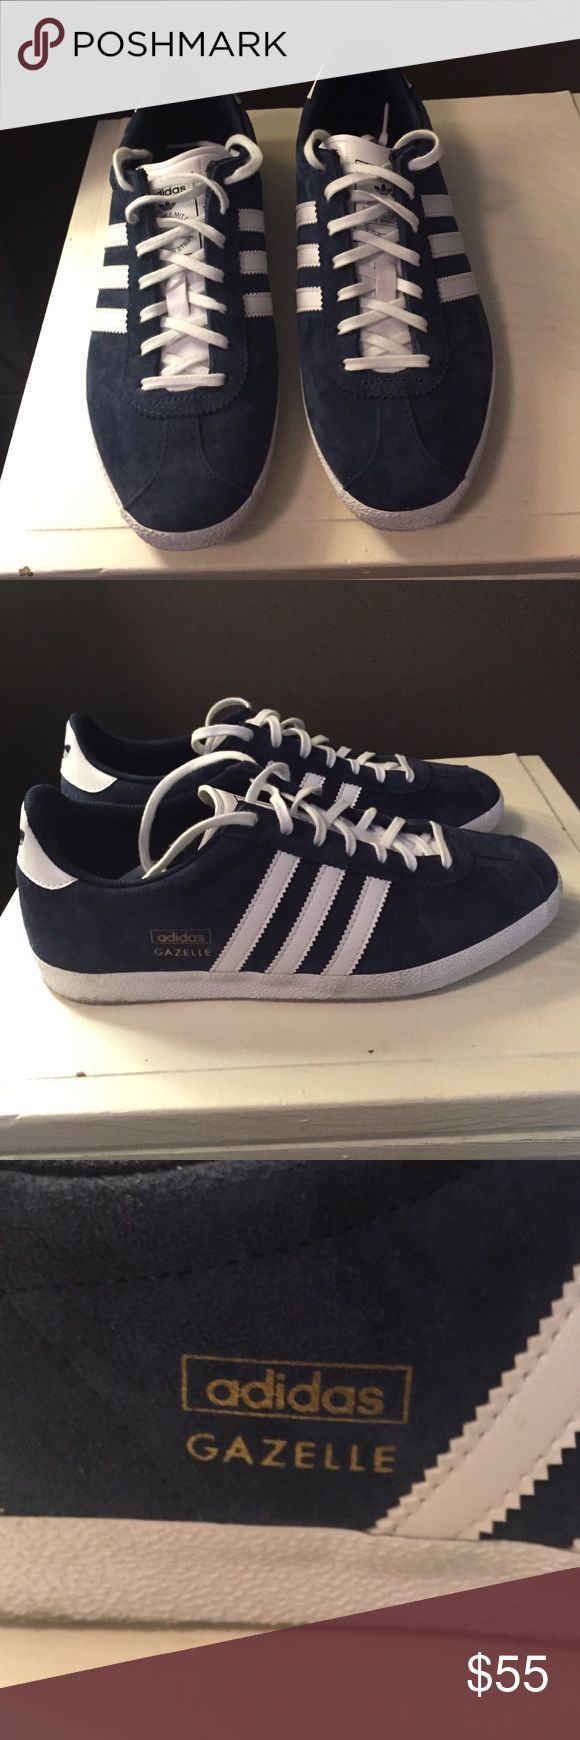 Navy blue Adidas Gazelle Adidas Originals Gazelle OG Trainer in Navy blue suede. Worn 3 times, great condition! Comes with white laces (shown) and navy laces. Women's 8/8.5, men's 6.5. adidas Shoes Sneakers